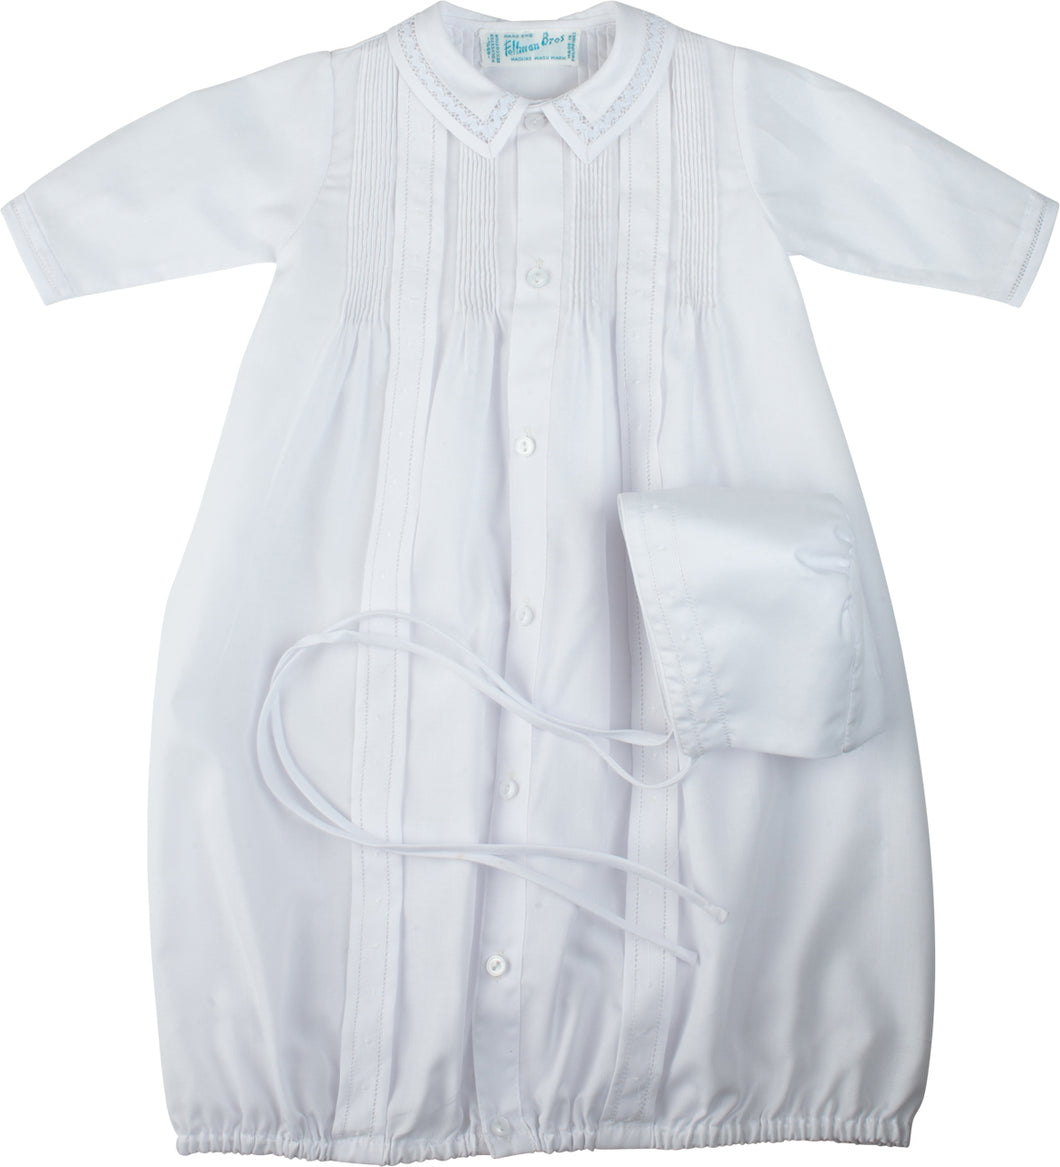 Unisex White Take-Me-Home Gown & Hat